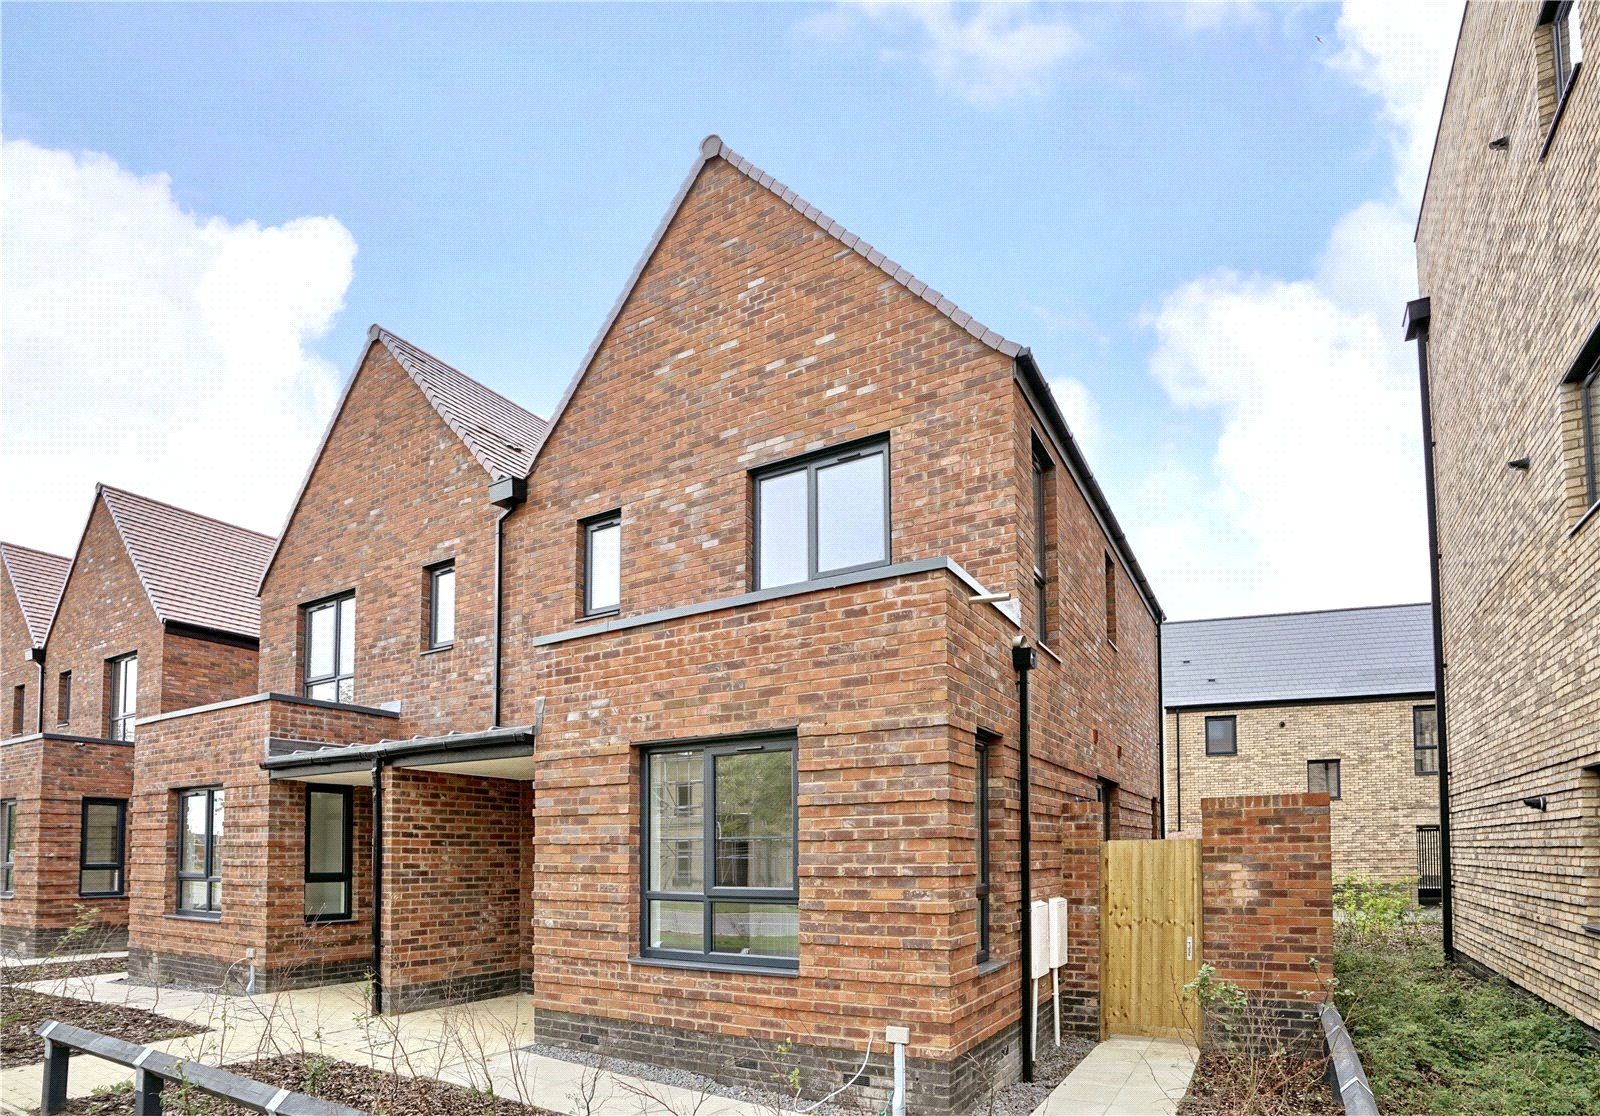 3 bed house for sale in Alconbury Weald, PE28 4HX - Property Image 1